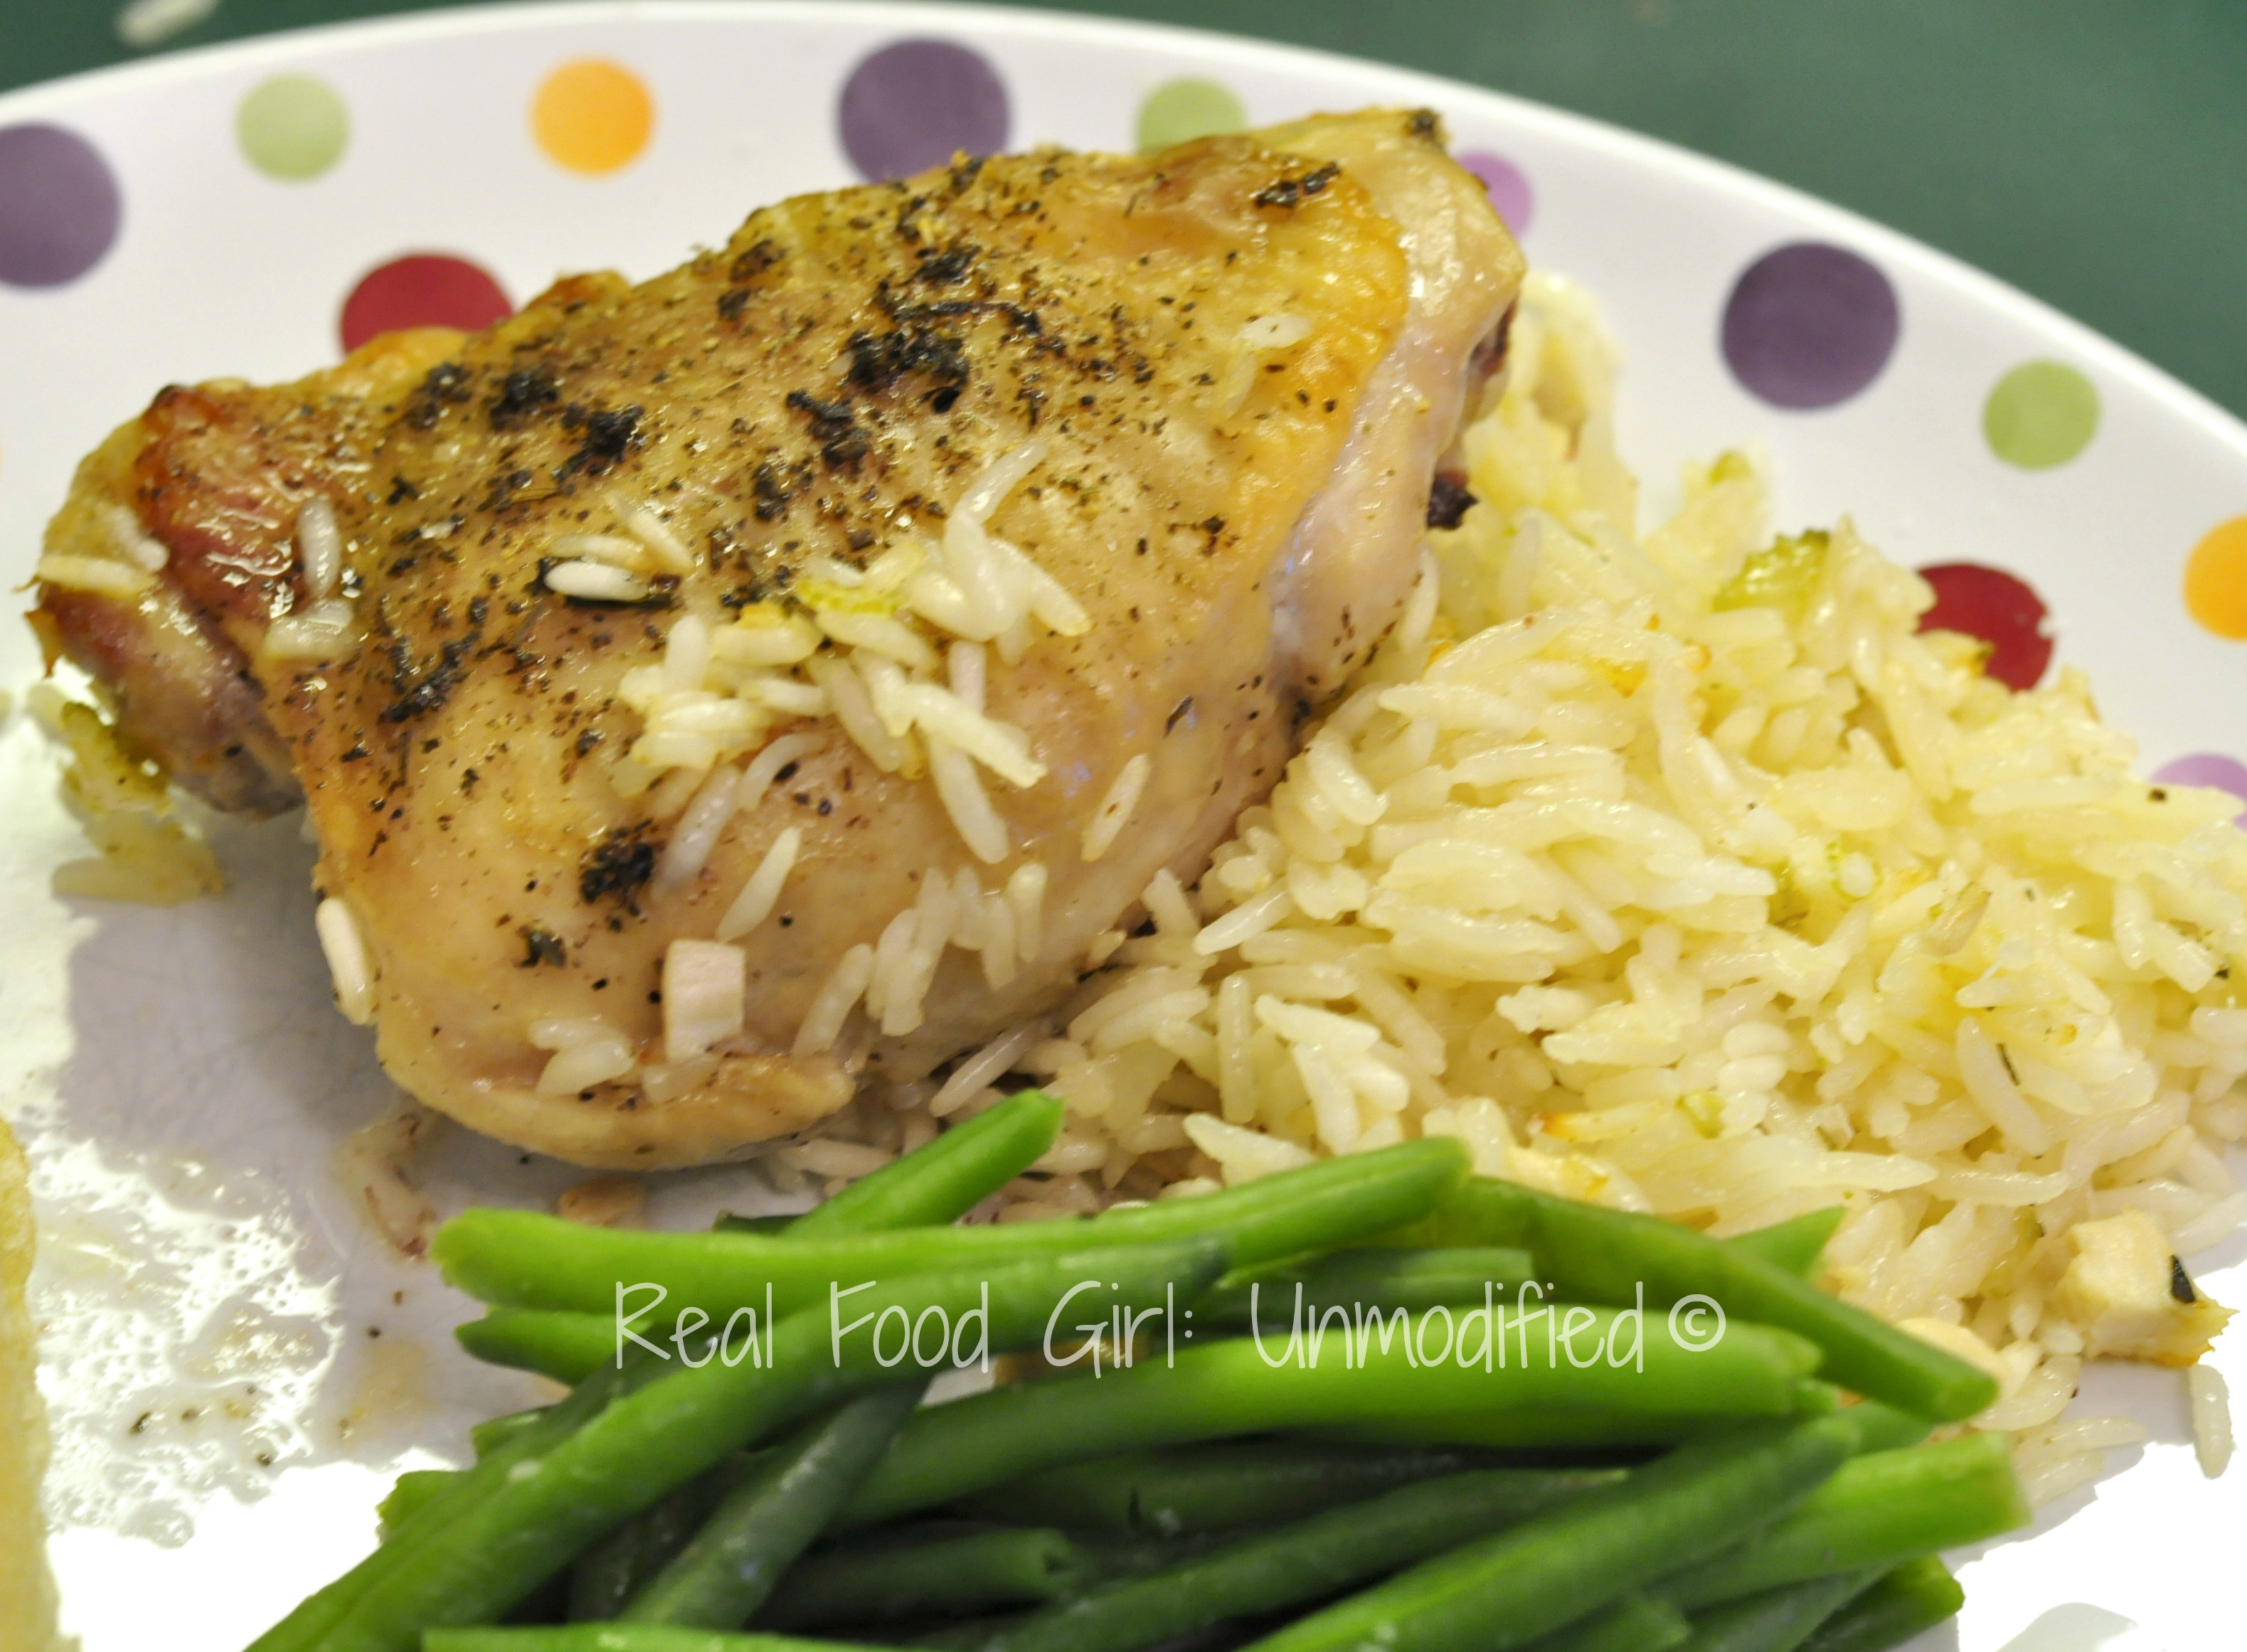 Baked Chicken And Rice Recipes  Lazy Baked Chicken and Rice